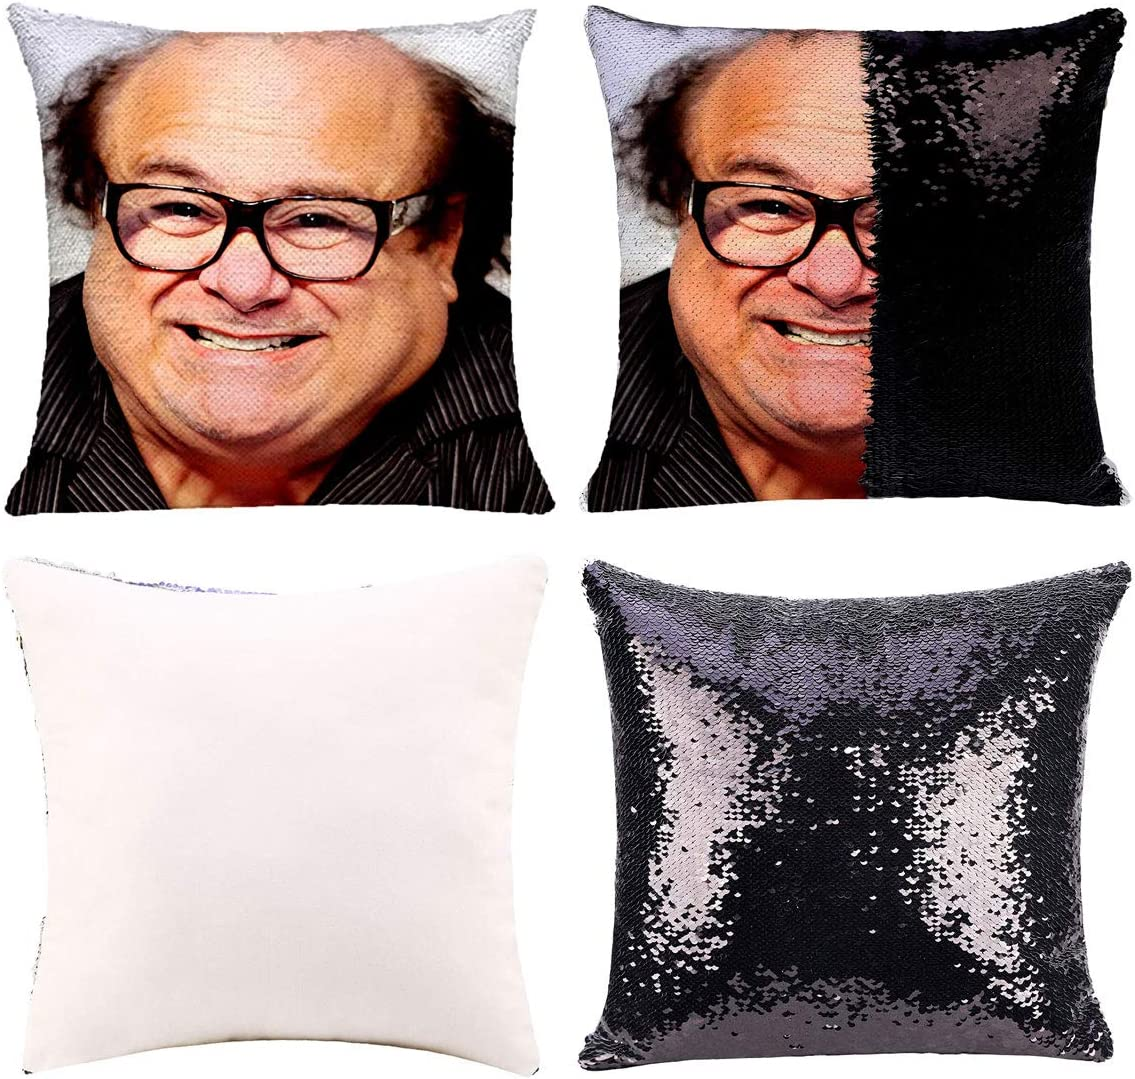 K T One Funny DIY Sequin Pillows Cover Face Magic Reversible Throw Pillow Cover Decorative Change Color Pillowcase 16x16 (Black)